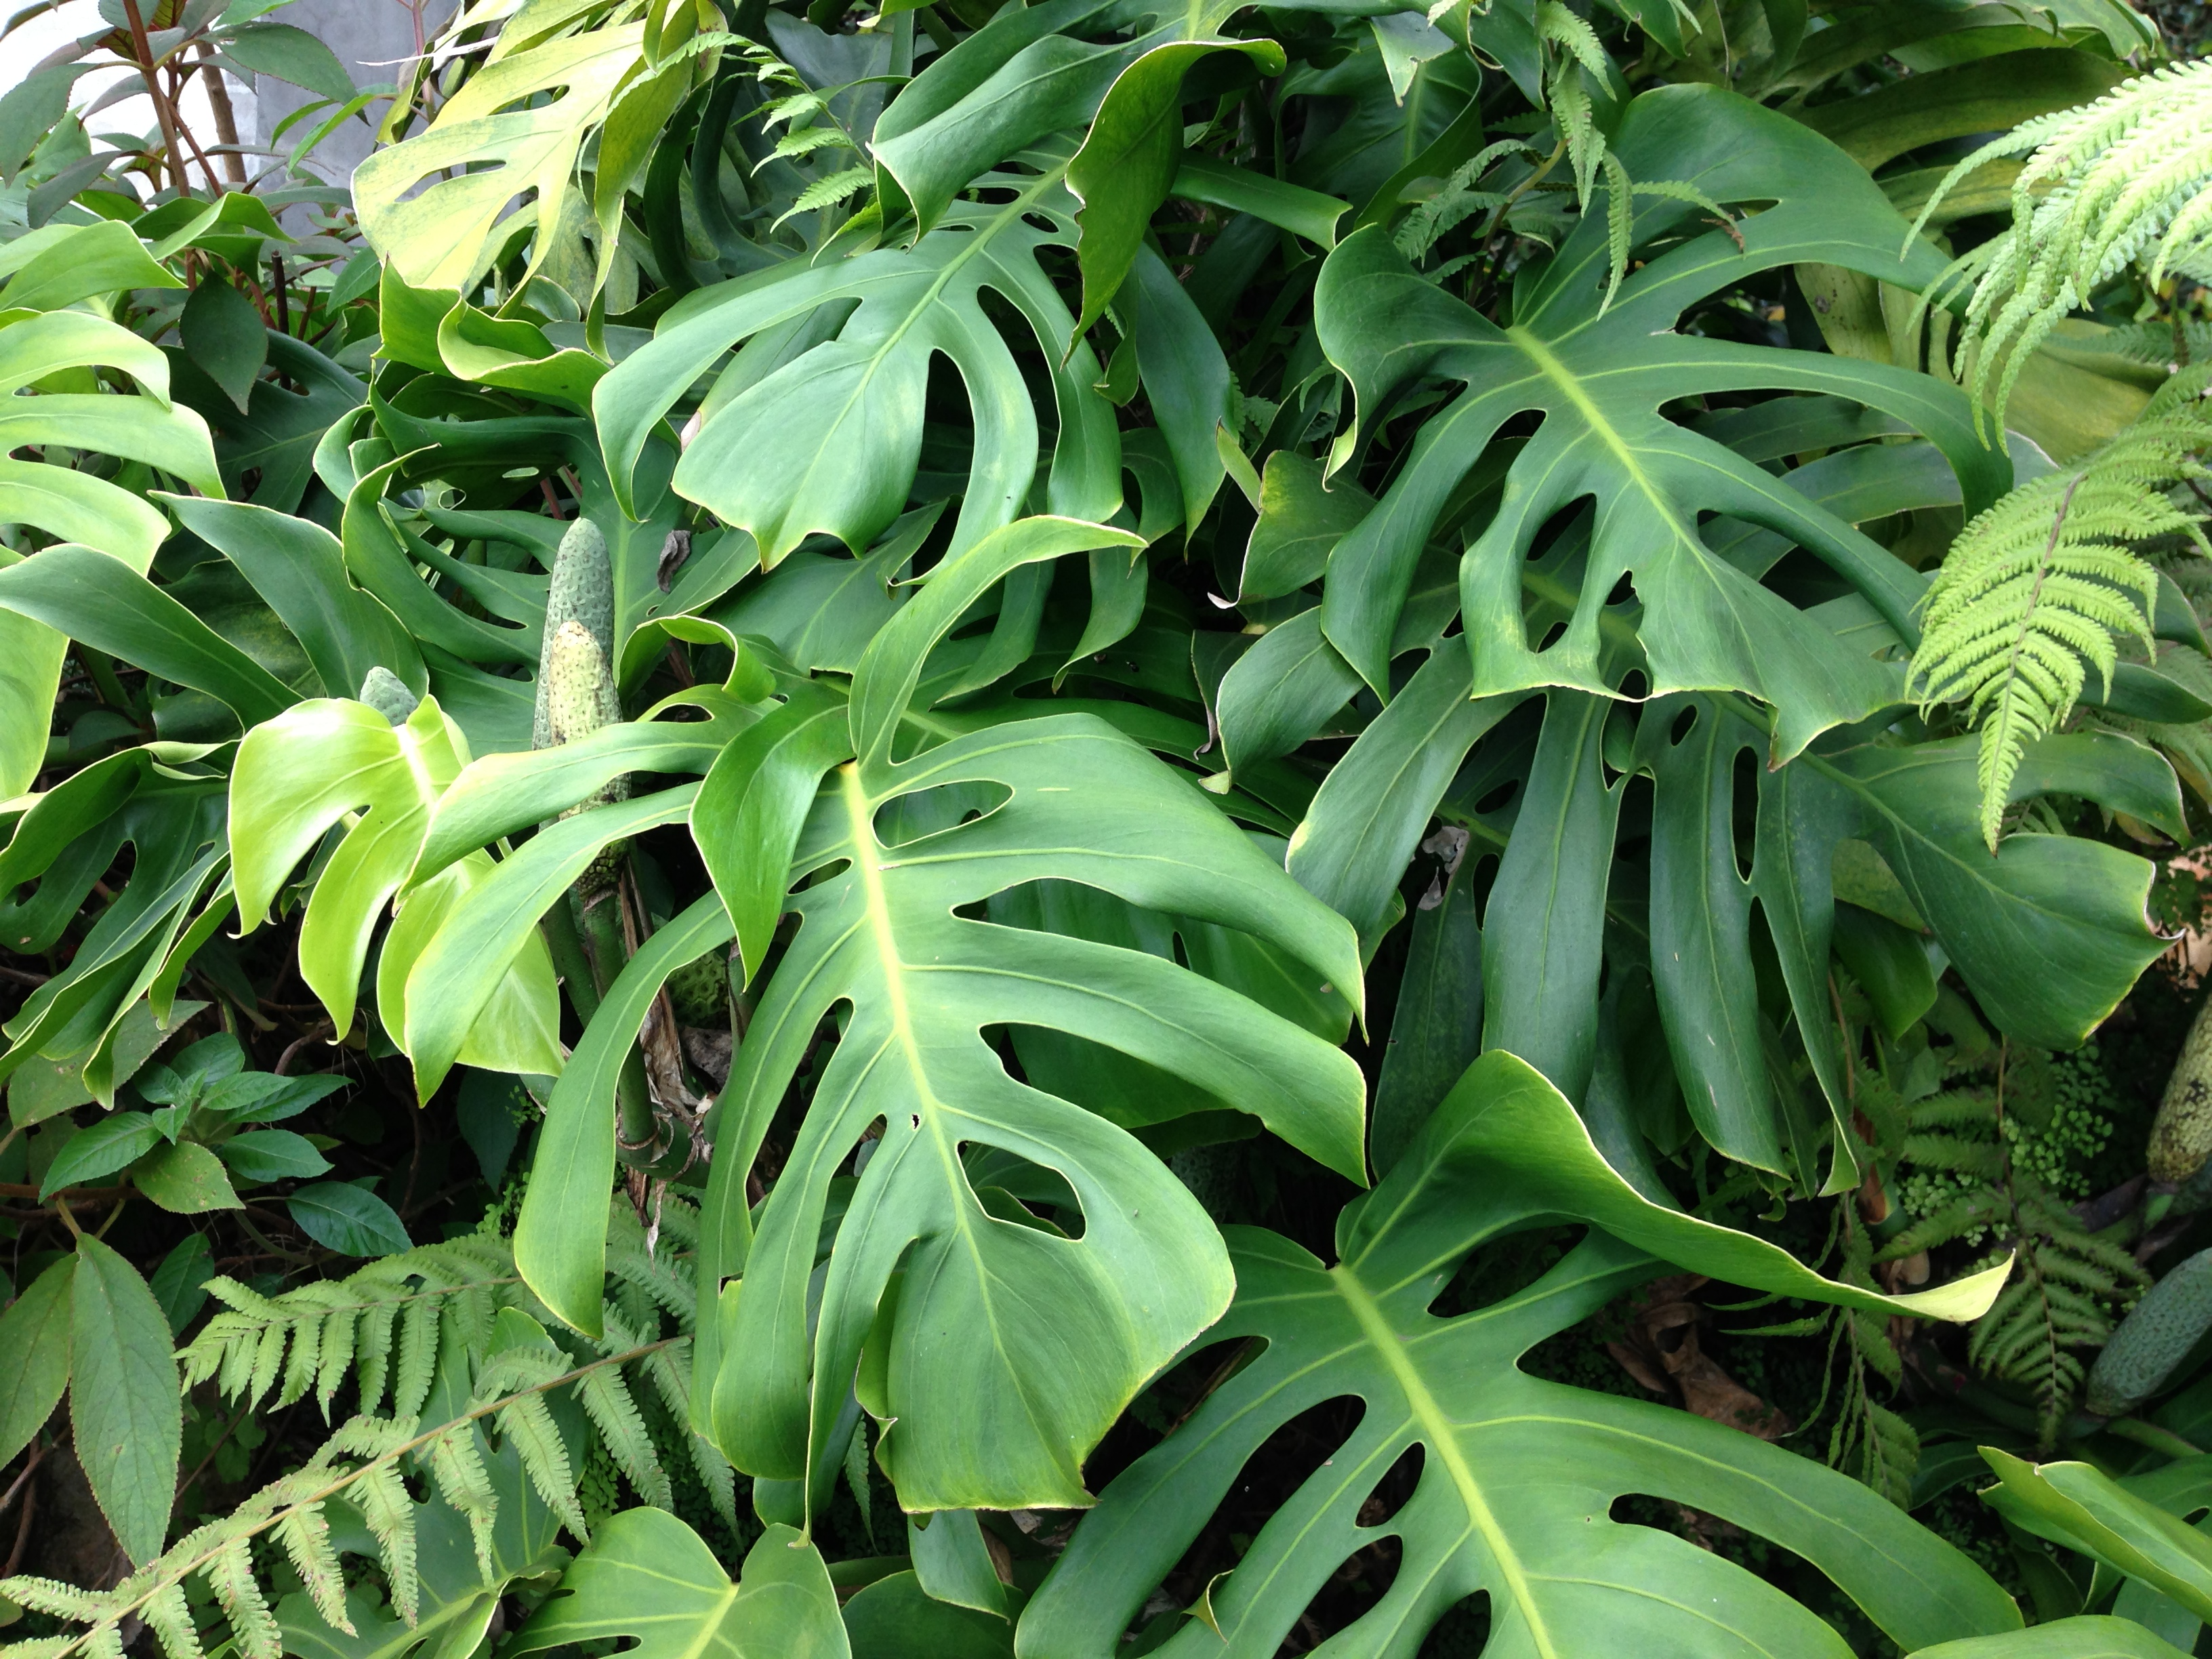 Swiss cheese leaves sunil 39 s garden for Garden plants names and pictures